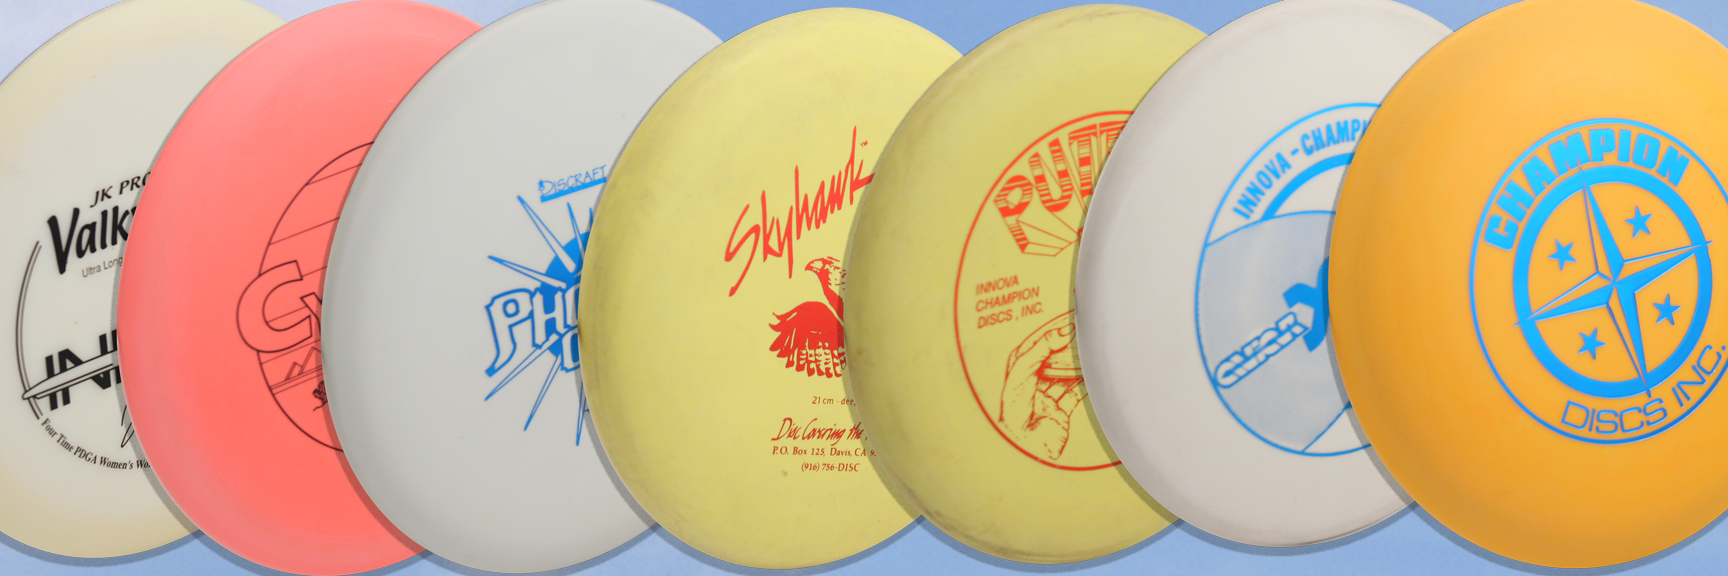 COLLECTOR DISCS & FRISBEES